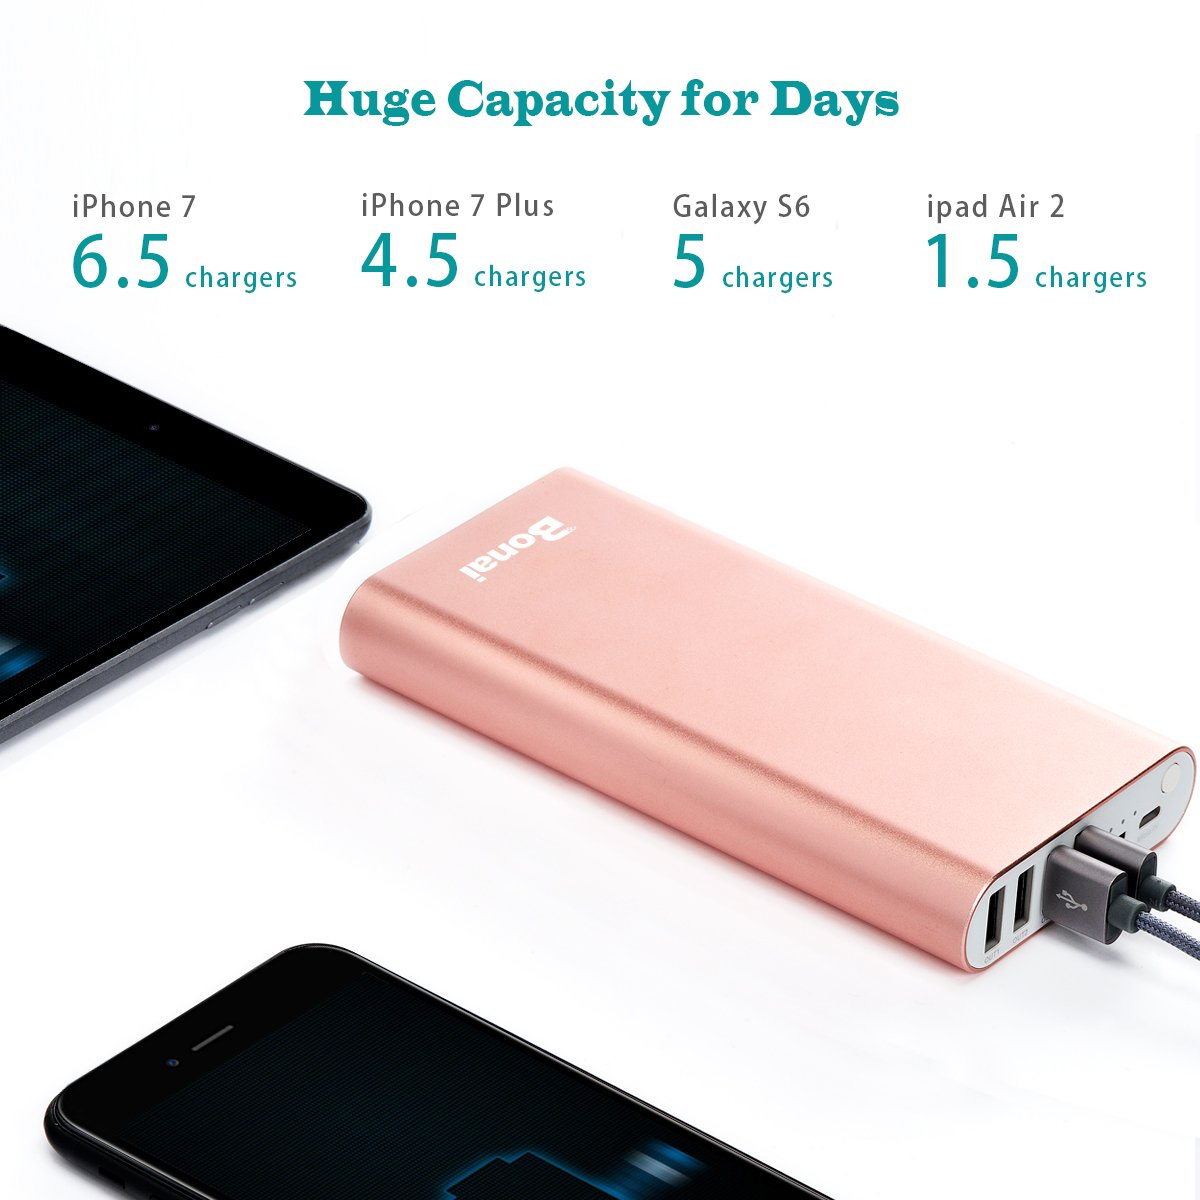 iPhone Charger, Bonai Portable Charger 20000mAh, Aluminum Polymer External Battery Pack 4.0A Max Lightning & Mirco Input 4-Port Output for iPhone 7 7 plus 6s 8 Galaxy S8 S7 Note 8 & Tablet -Rose Gold by Bonai (Image #2)